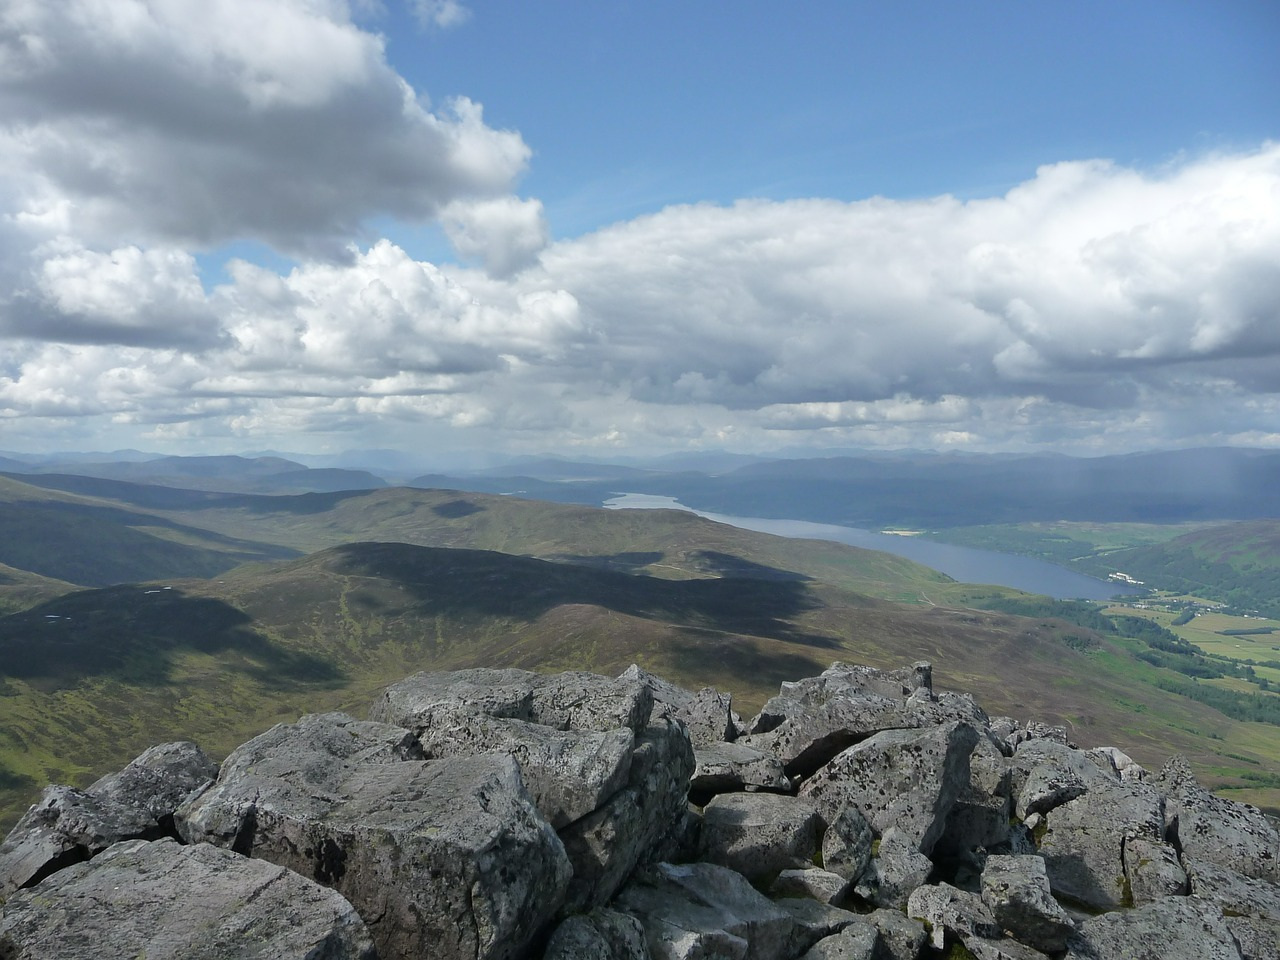 View of Loch Rannoch from the top of the world